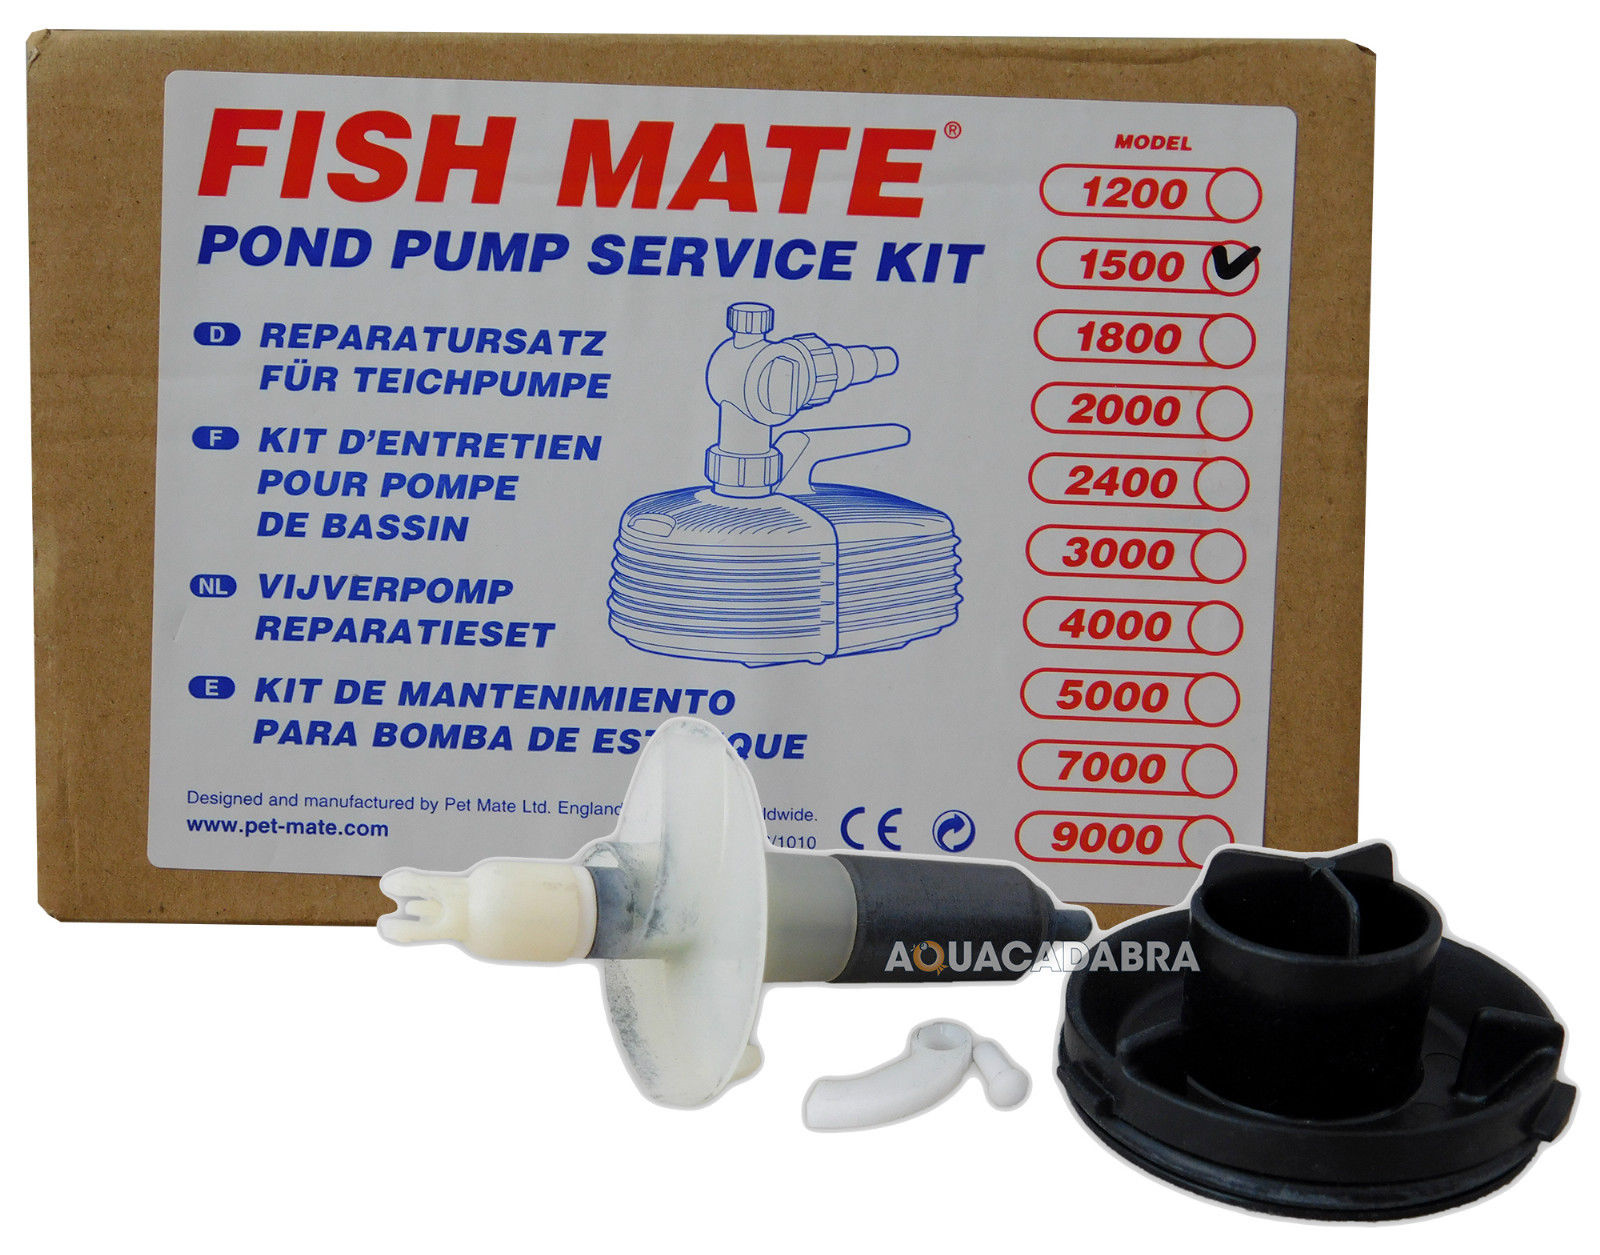 pond of fish dating service Read our expert reviews and user reviews of the most popular fish in the pond dating service here, including features lists, star ratings, pricing information, videos, screenshots and more.